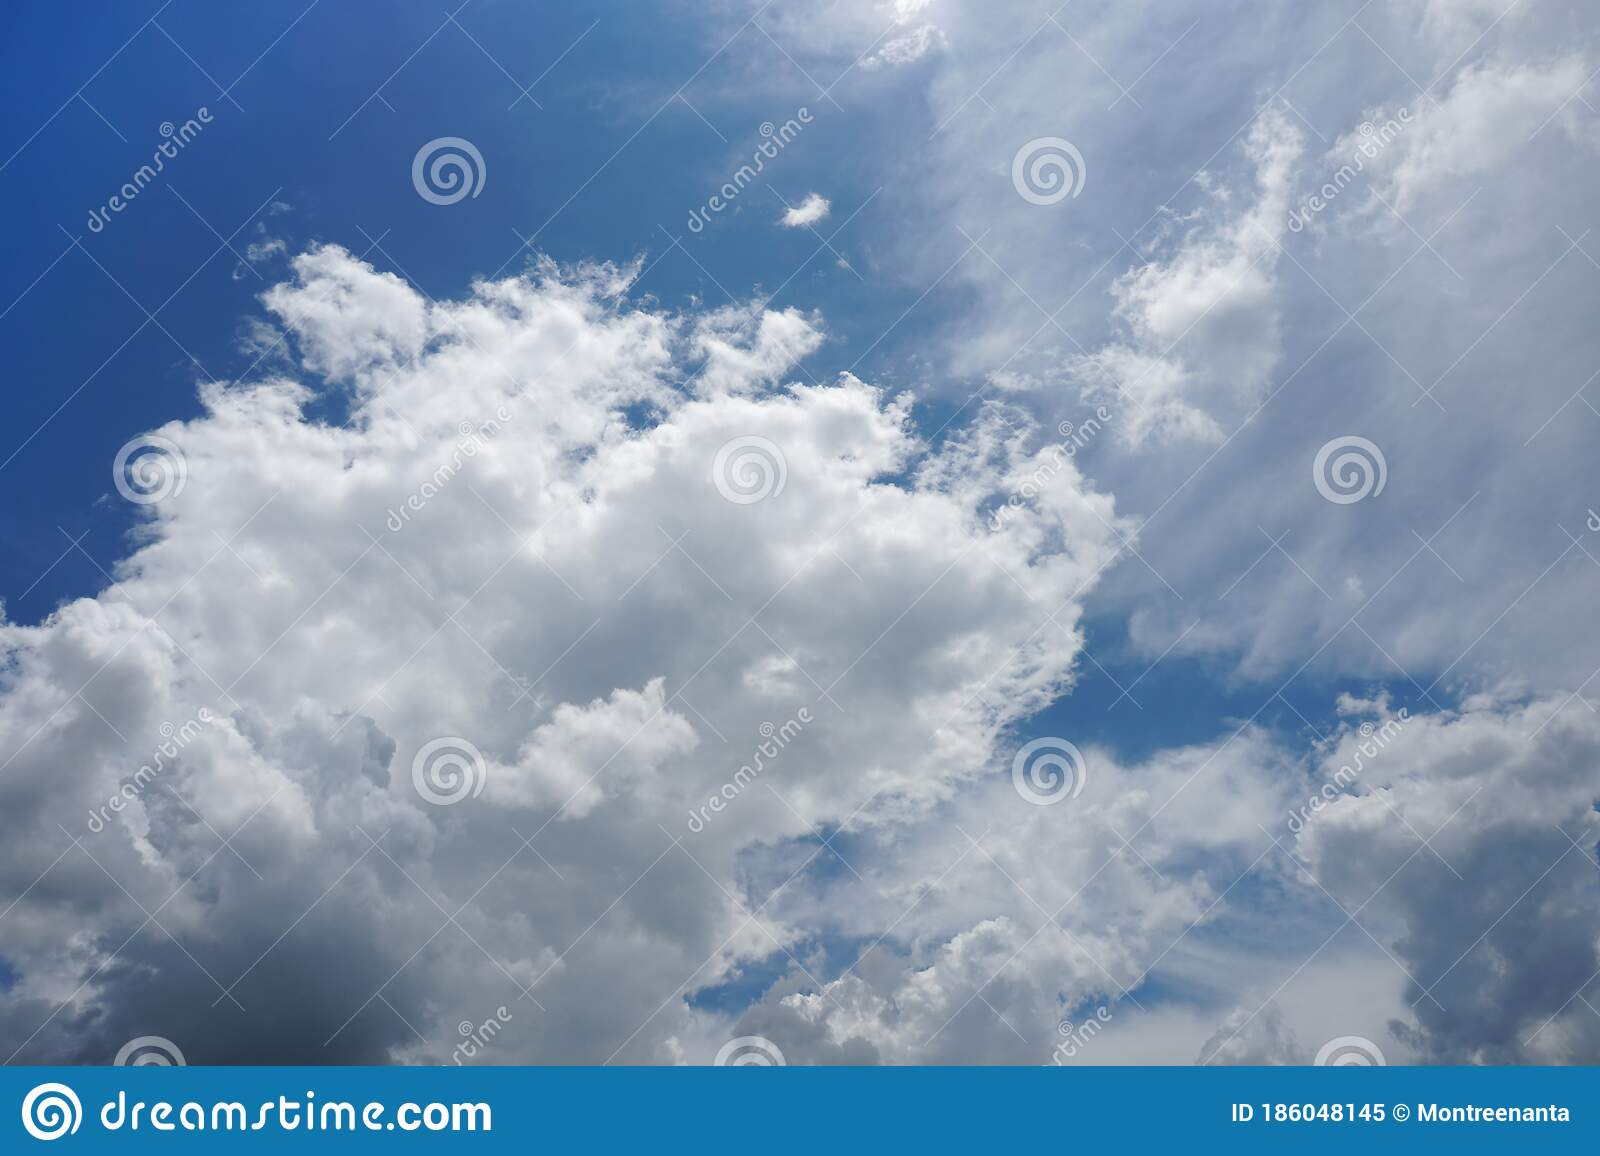 Cloudy Sky With Stratocumulus Clouds When The Storm Is Coming Clouds And Blue Sky Background Stock Image Image Of Background Landscape 186048145